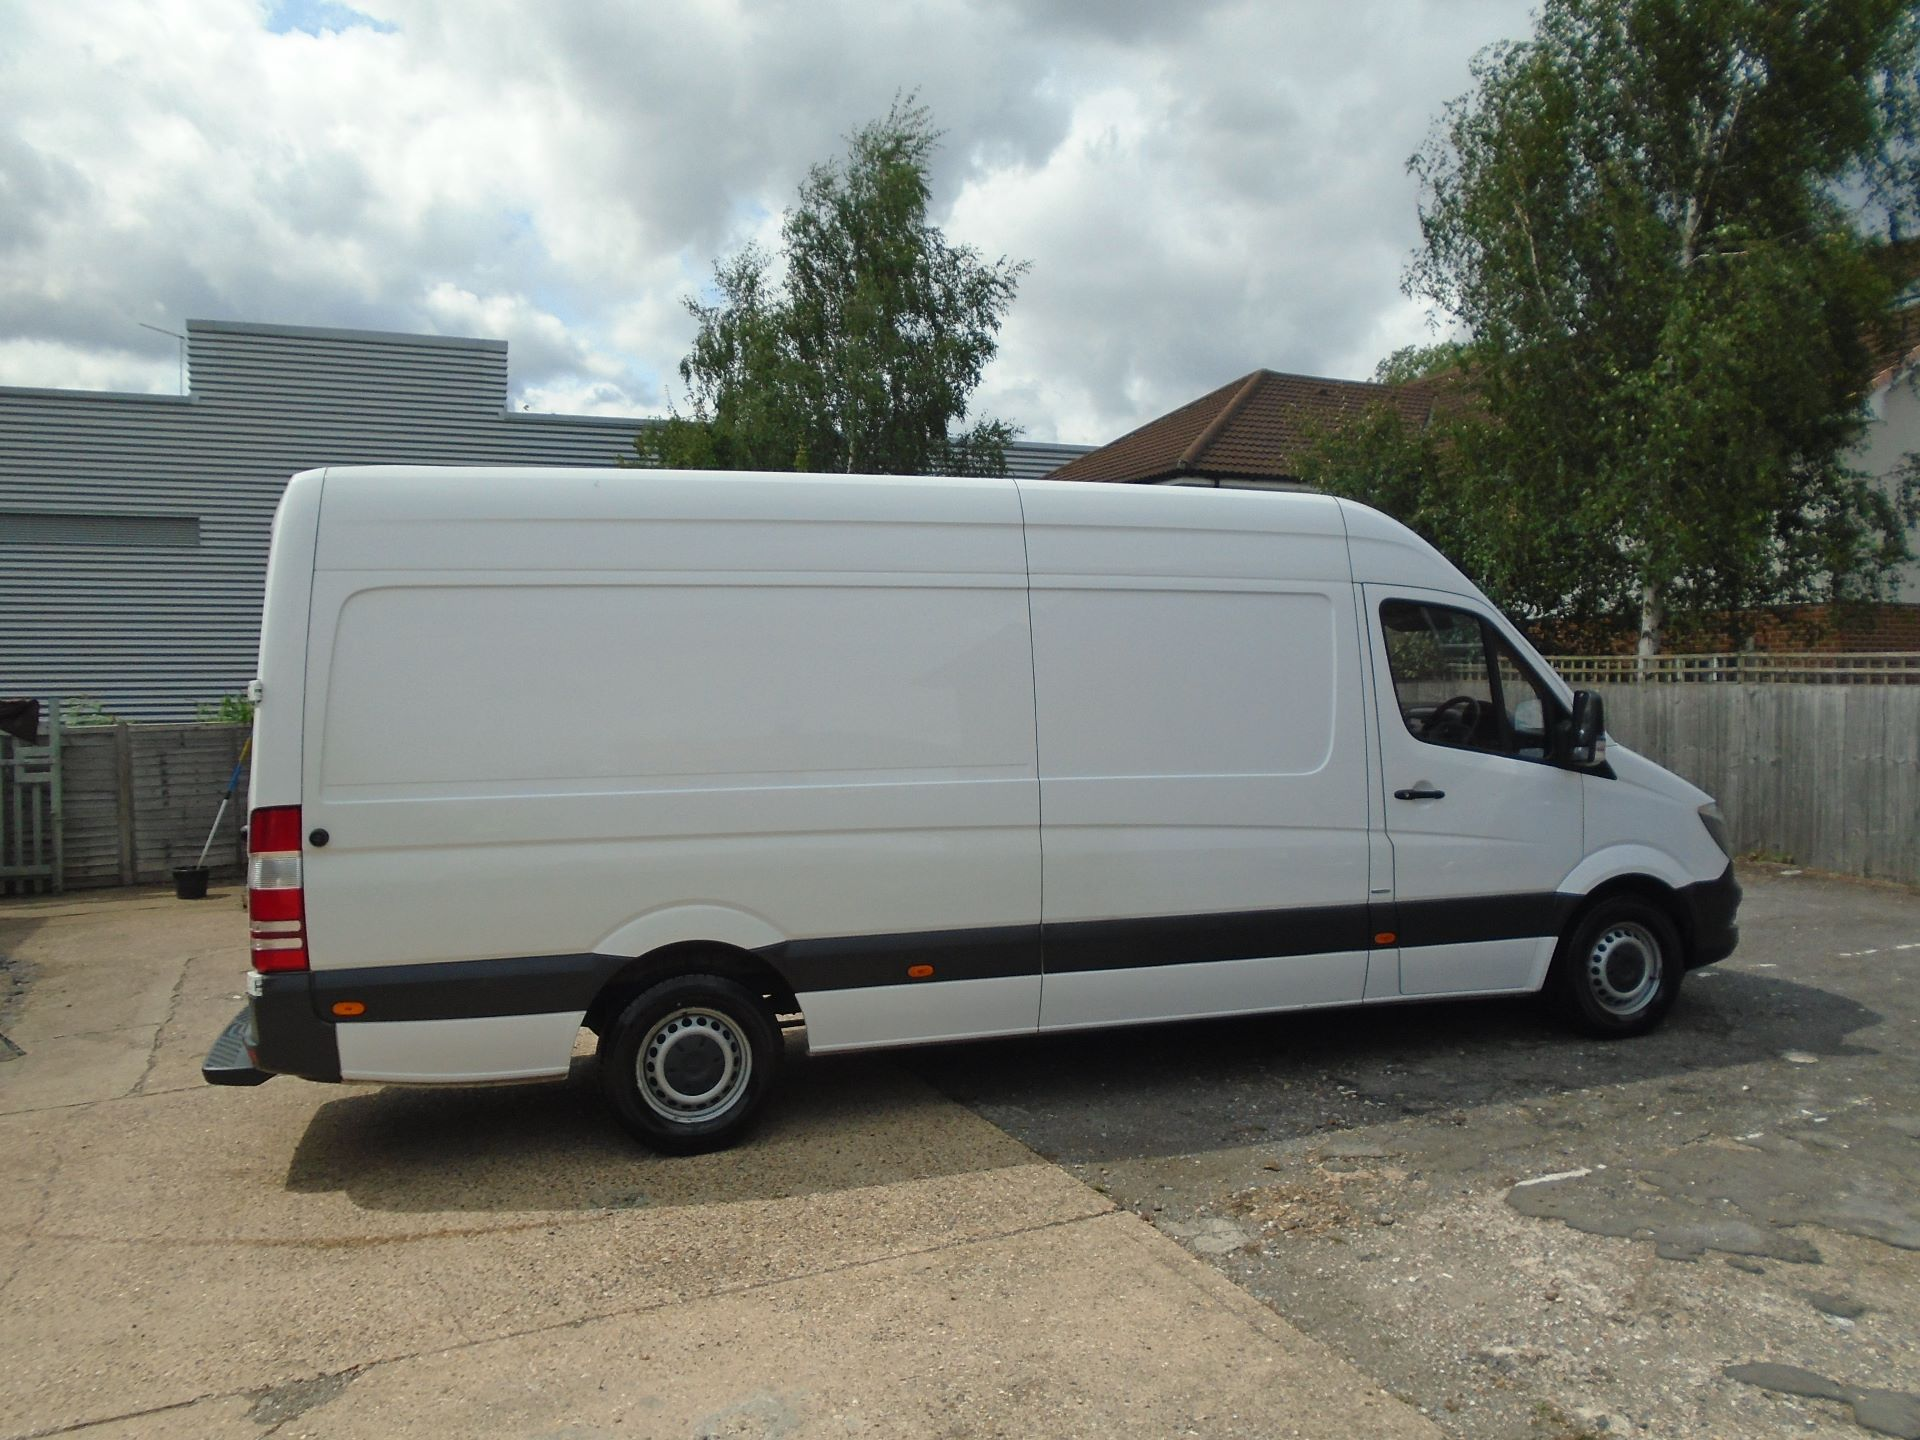 2016 Mercedes-Benz Sprinter 3.5T High Roof Van EURO 5 (KU16MXH) Thumbnail 4